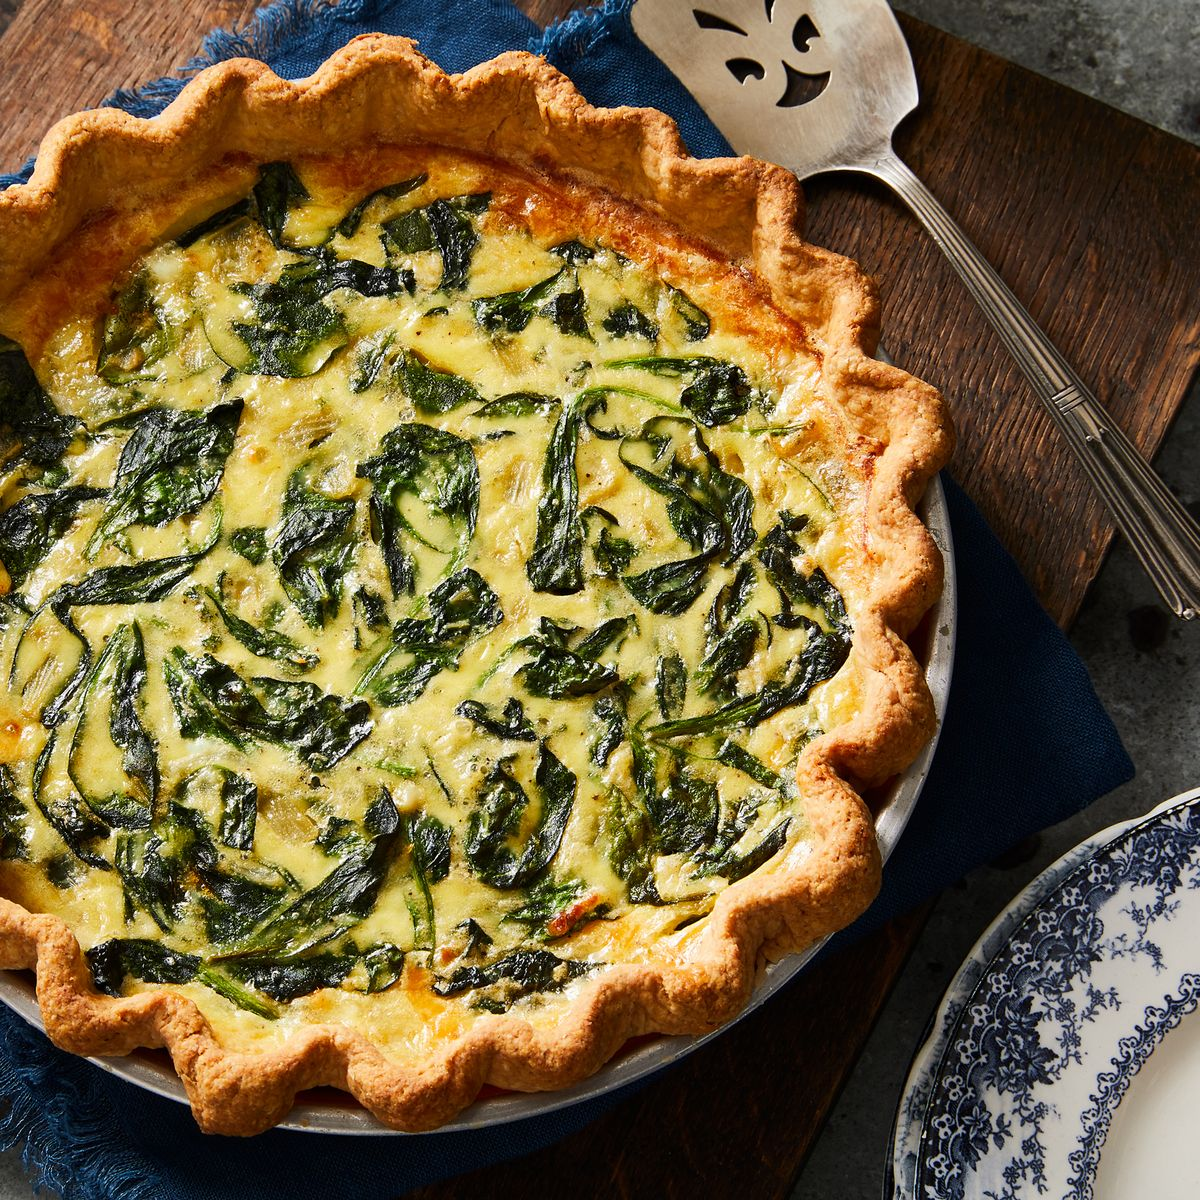 Best Spinach Quiche Recipe How To Make Spinach And Cheese Quiche